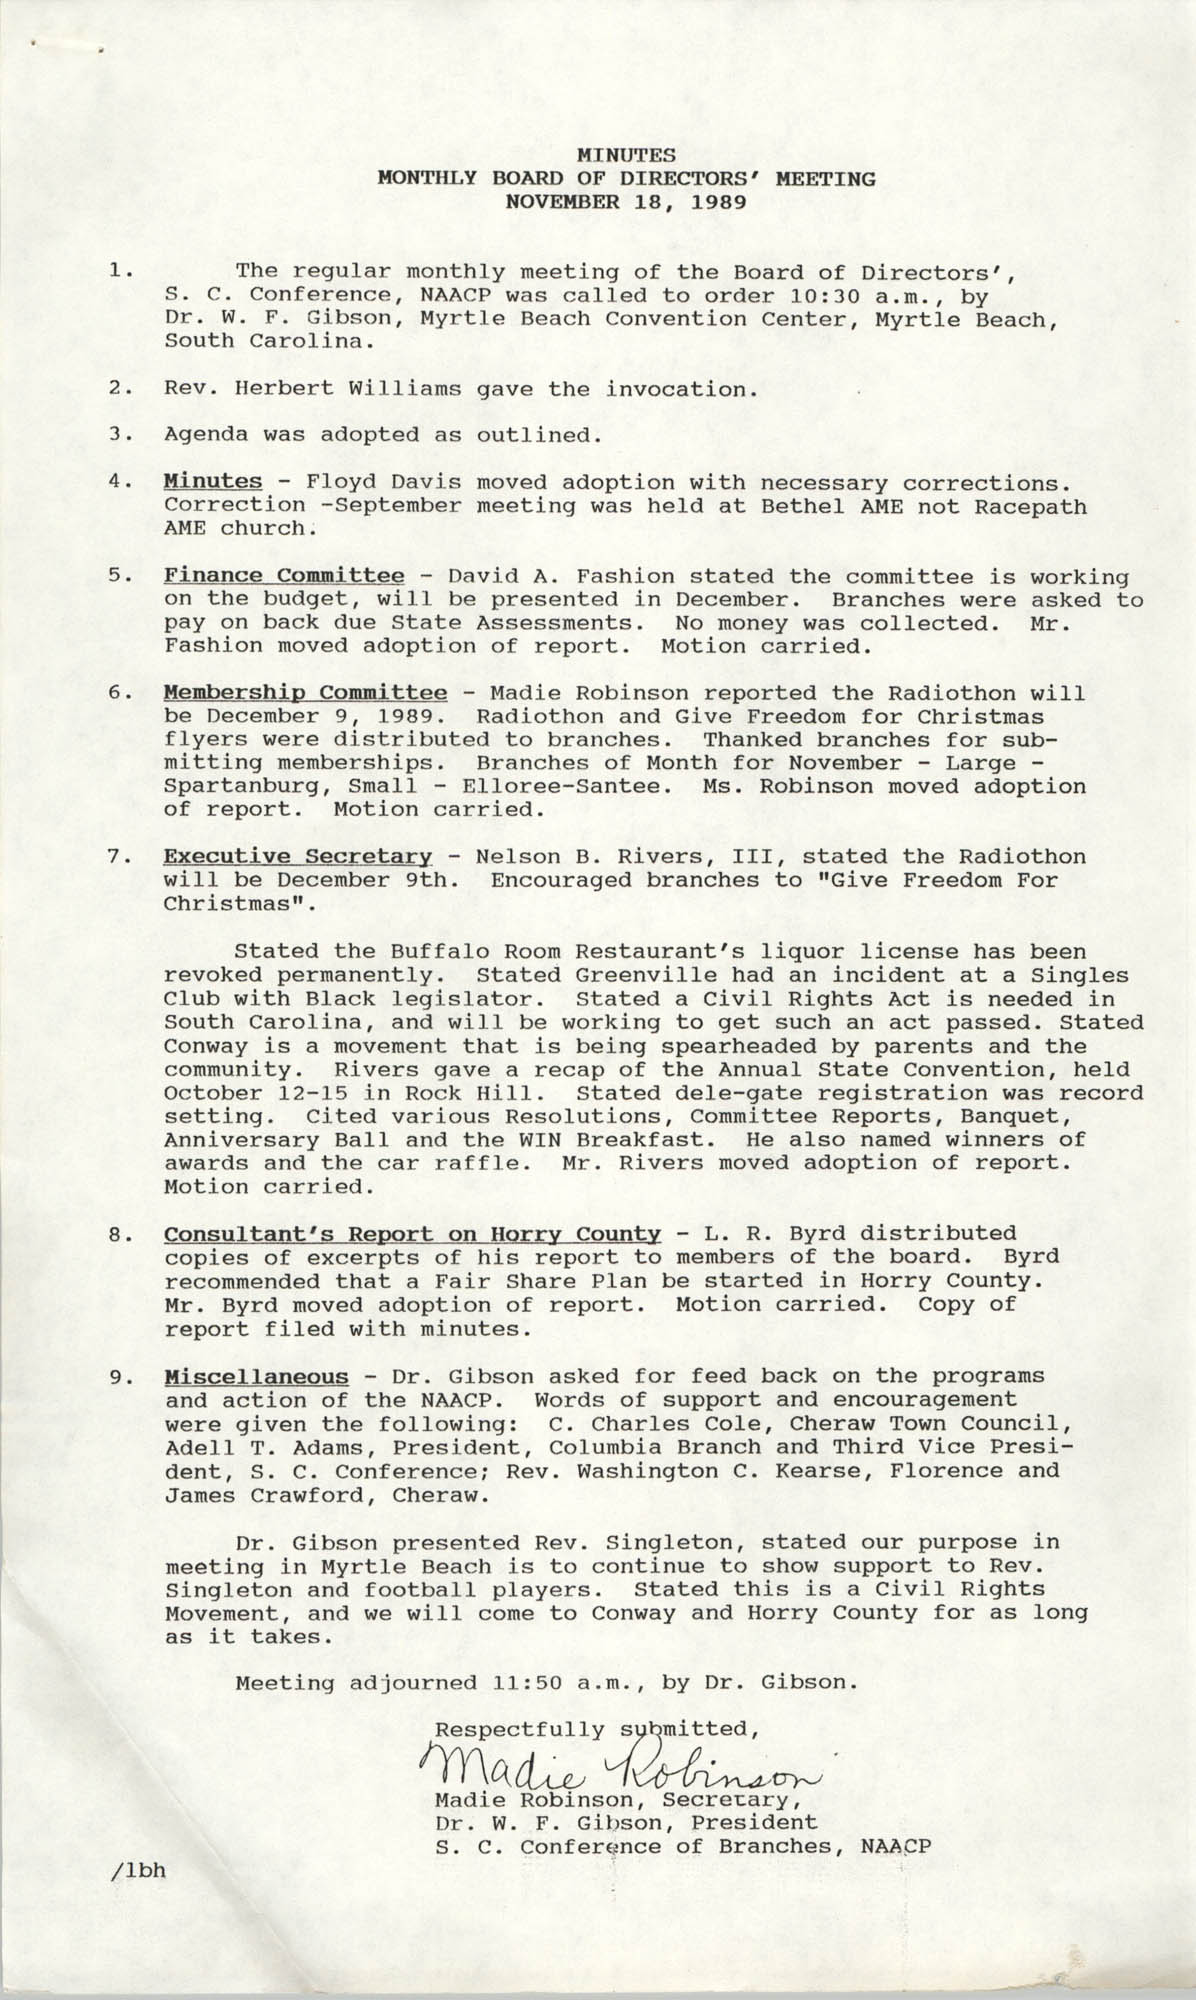 South Carolina Conference of Branches of the NAACP Memorandum, November 18, 1989